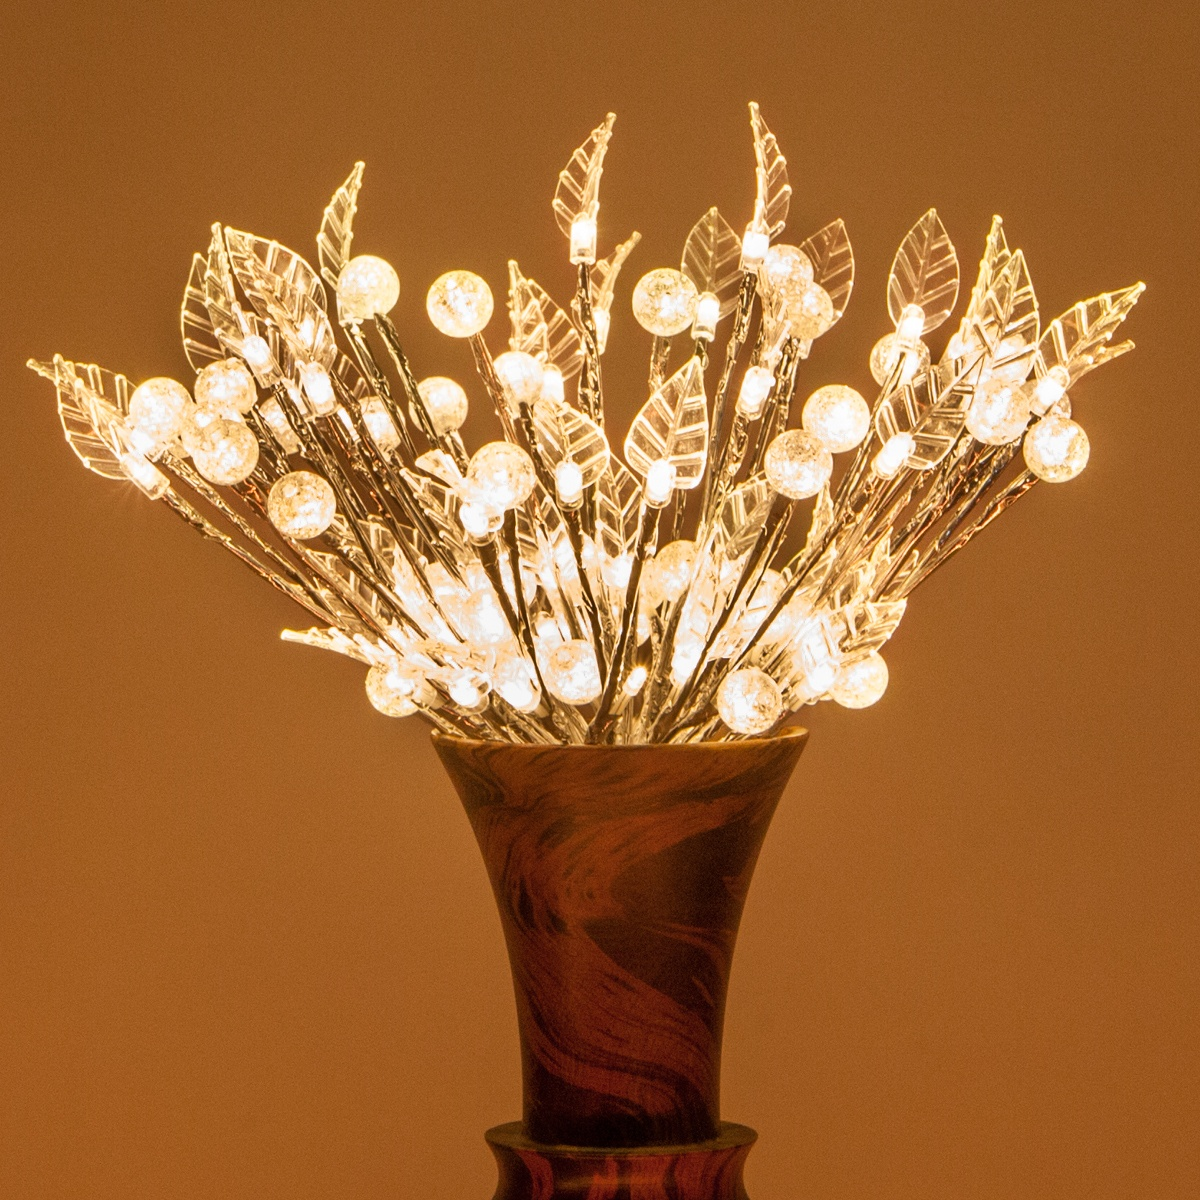 Silver Starburst Led Lighted Branches Warm White Lights